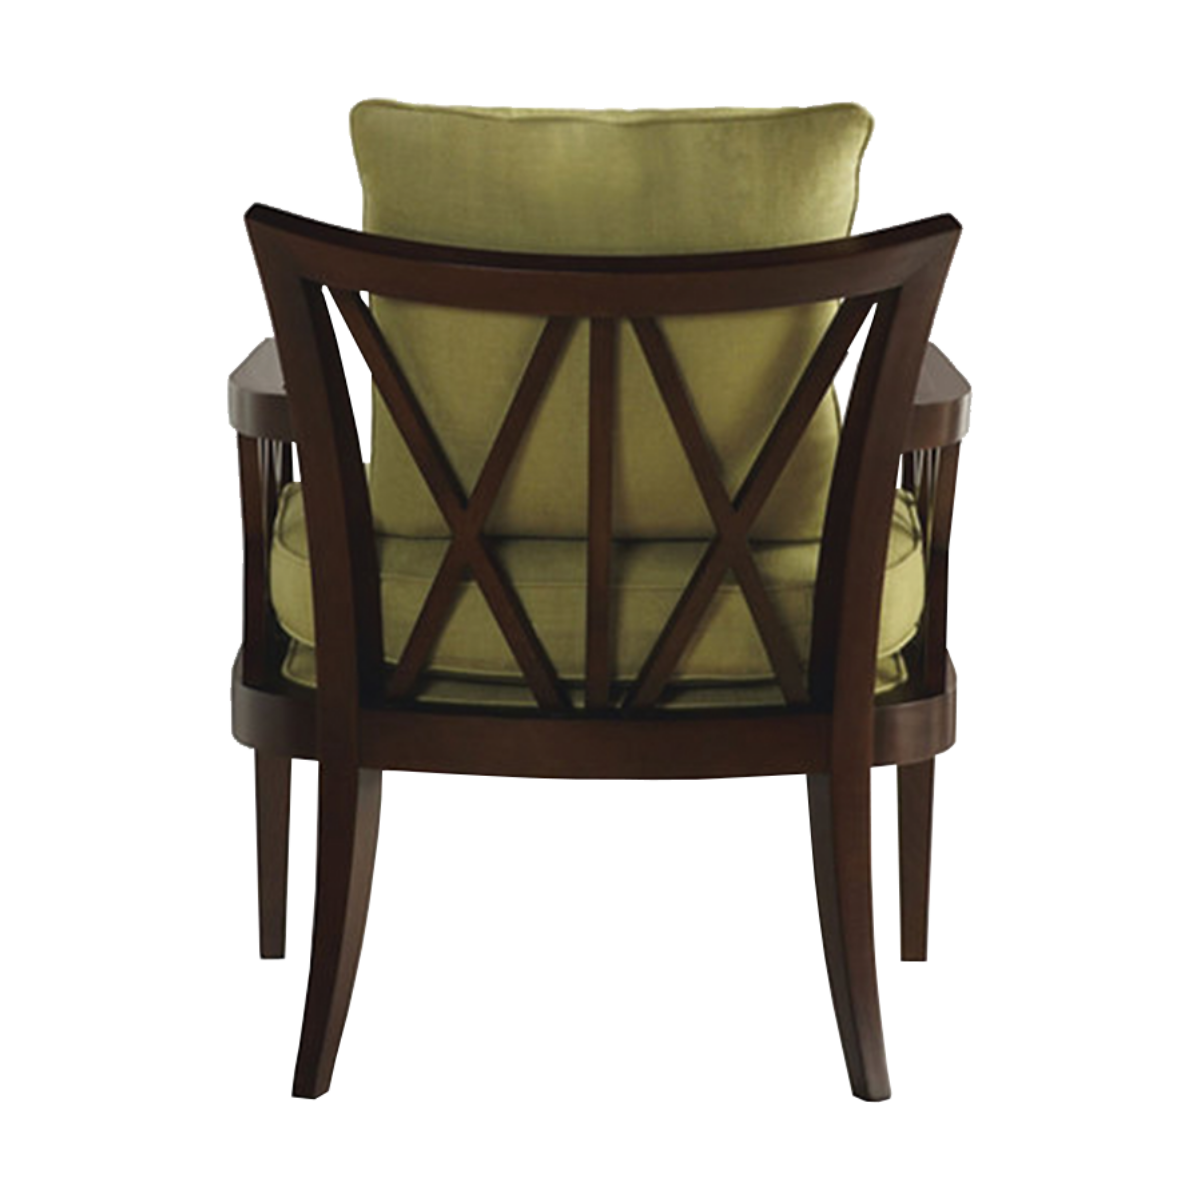 ACCENT CHAIRS-ACH-02 - Beyoot Furniture